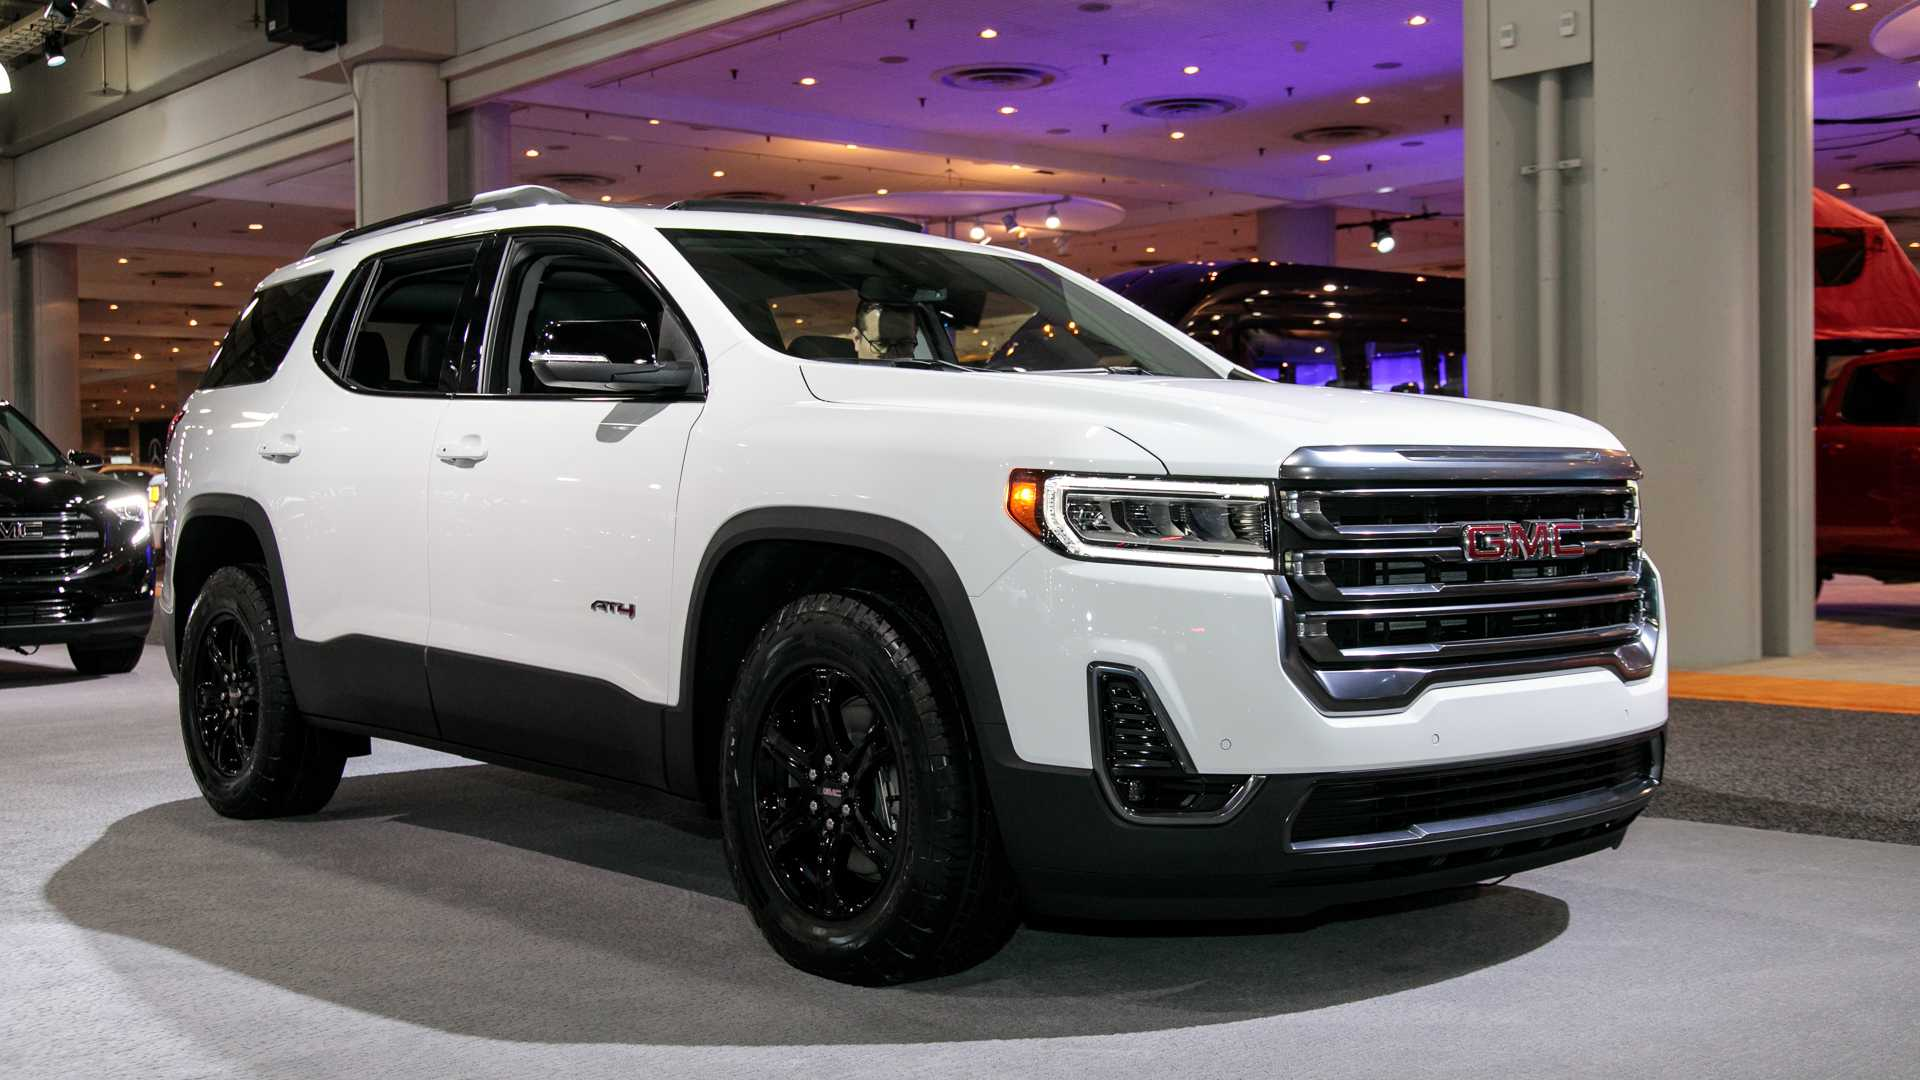 59 Best Review 2020 Gmc Midsize Suv Engine for 2020 Gmc Midsize Suv